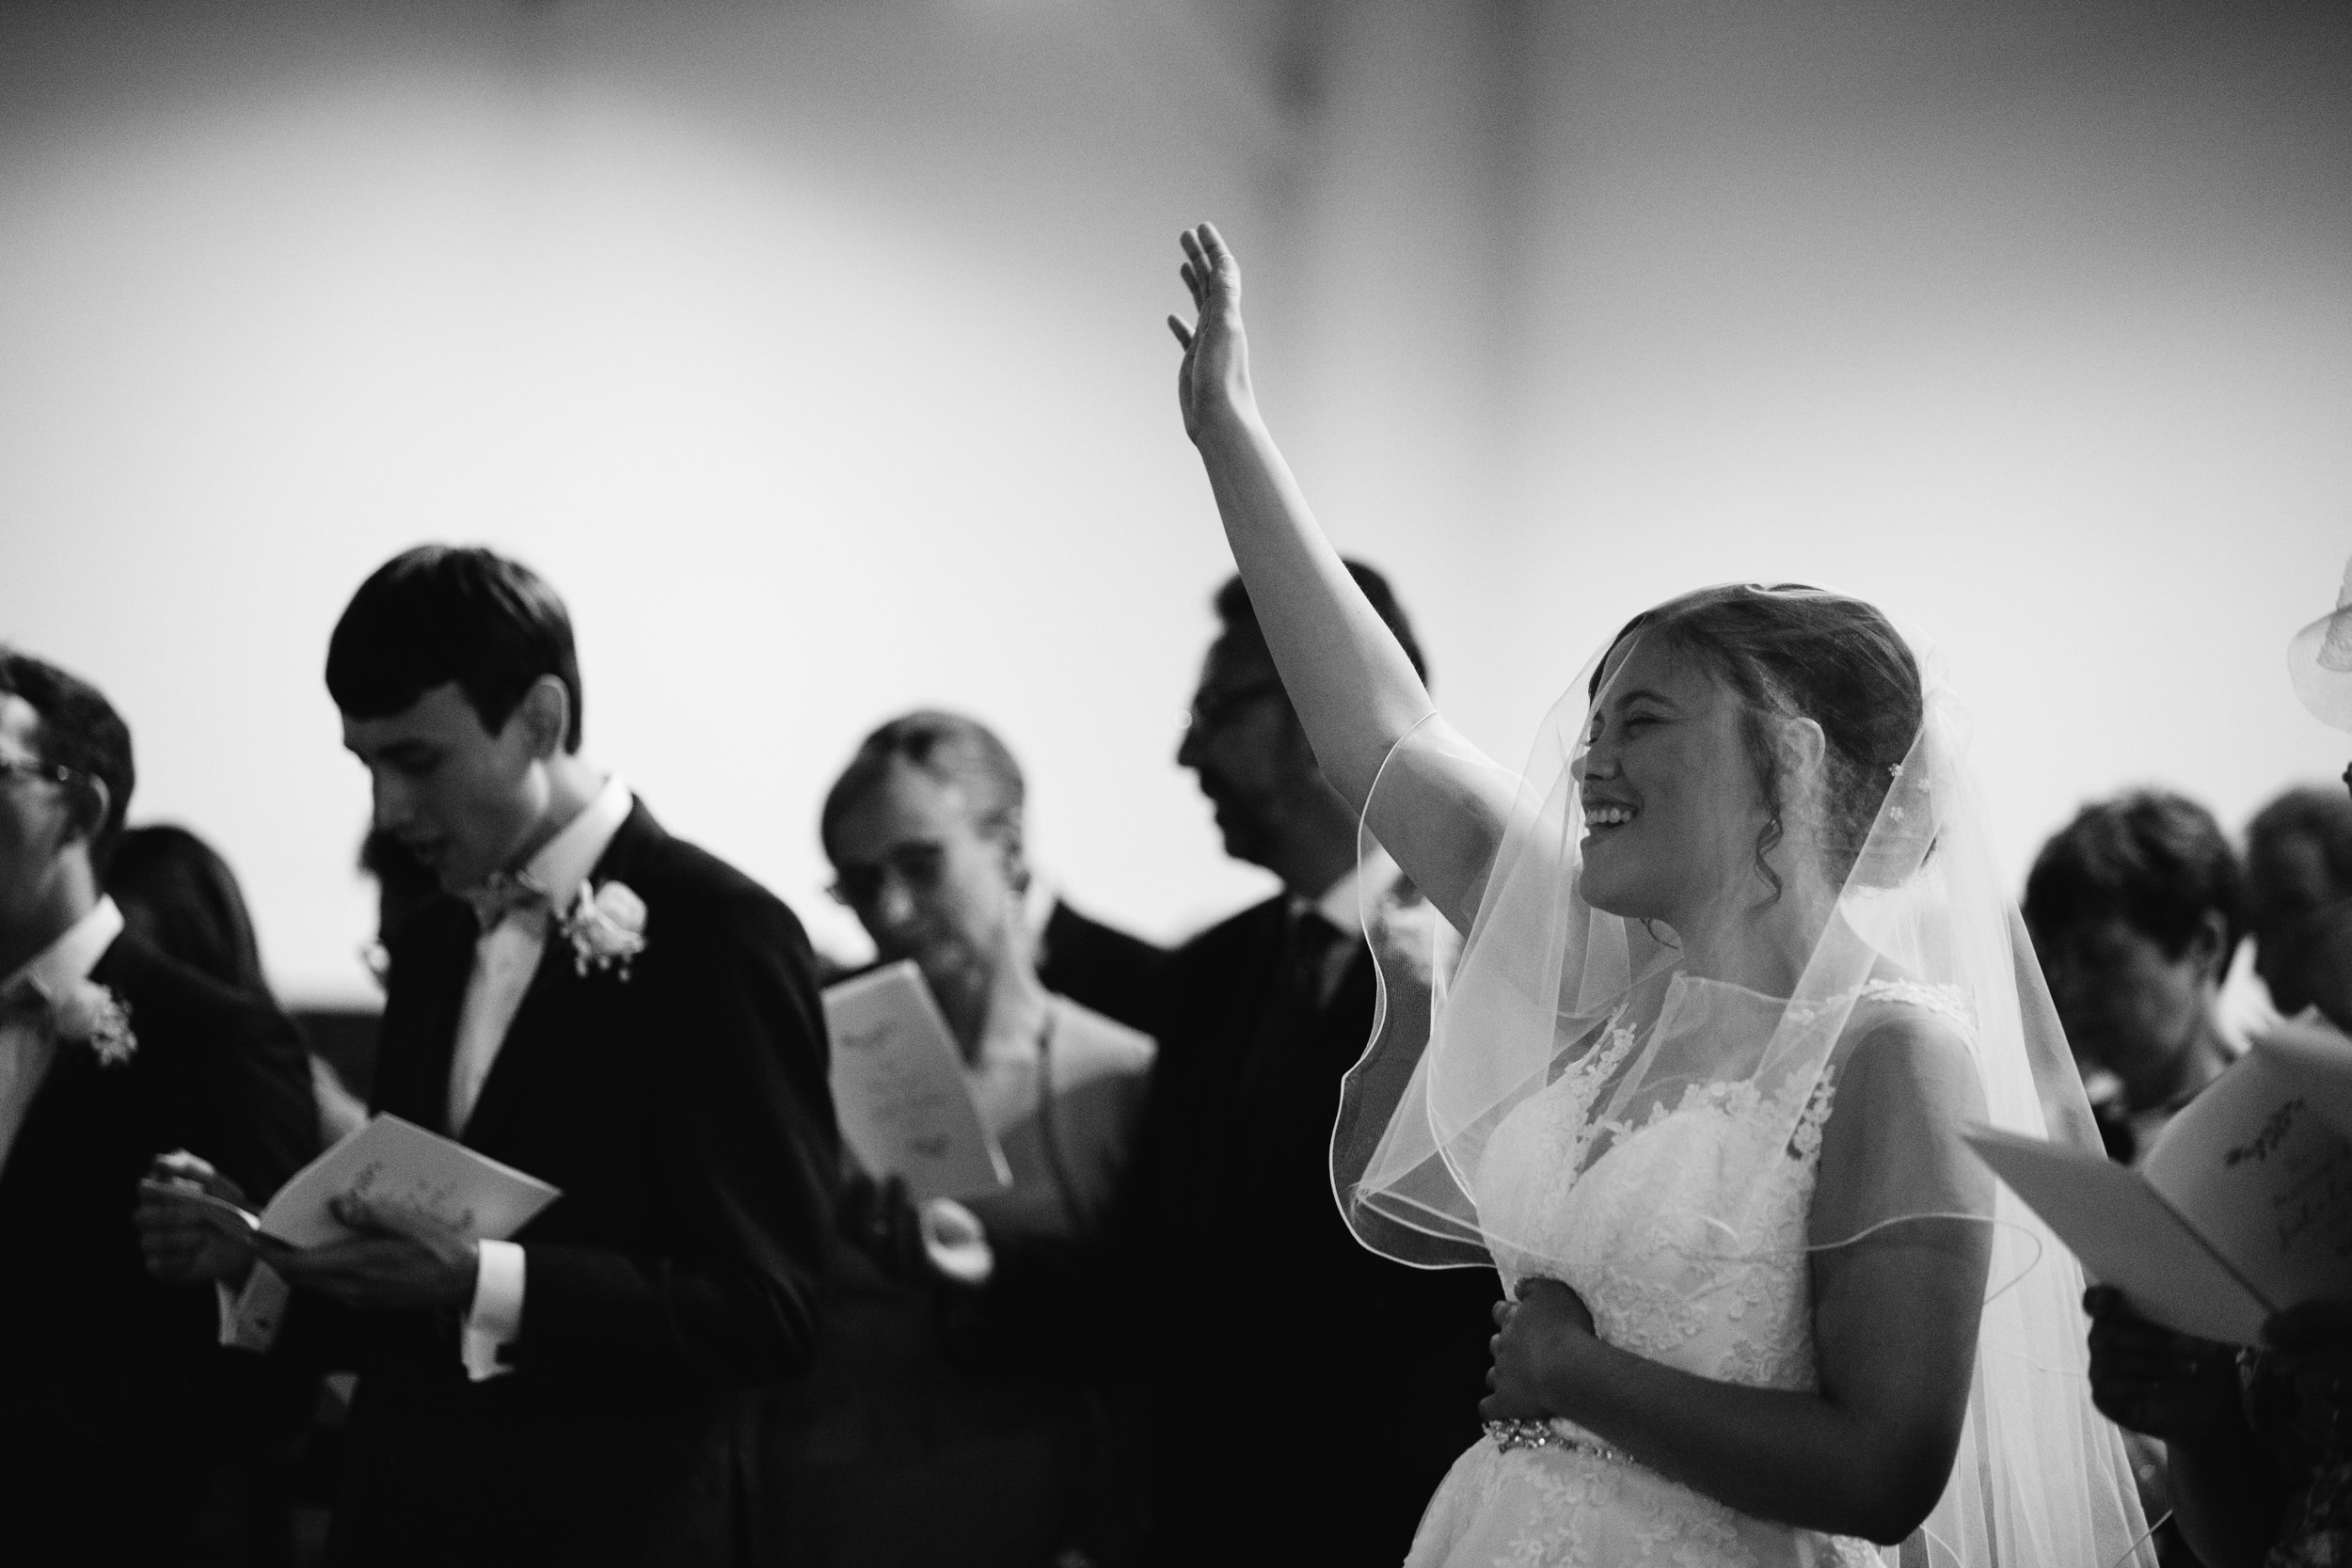 078 Esther and Joel - 20170722- 135.jpg